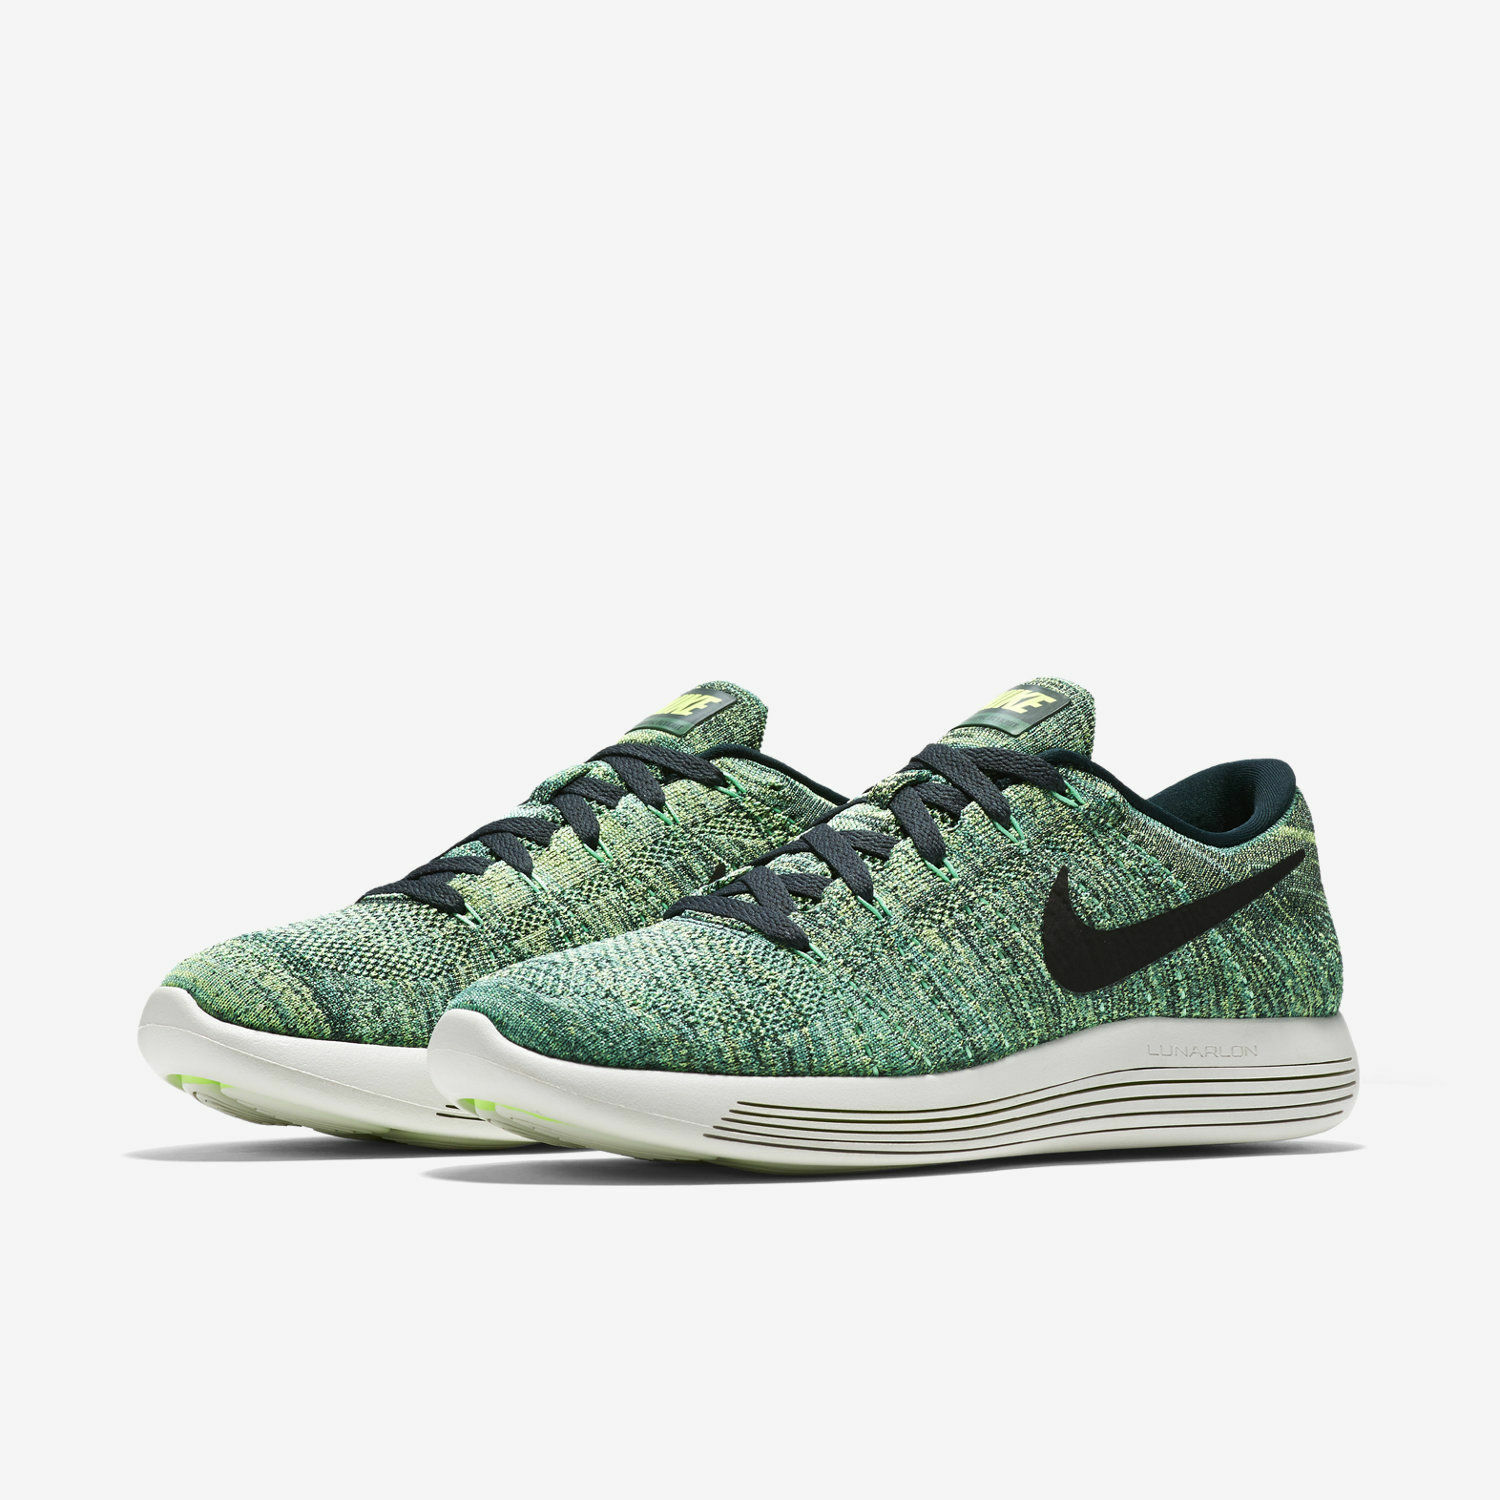 Men's Nike LunarEpic Low Flyknit Running Seaweed Green   Black Sz 9 843764 300